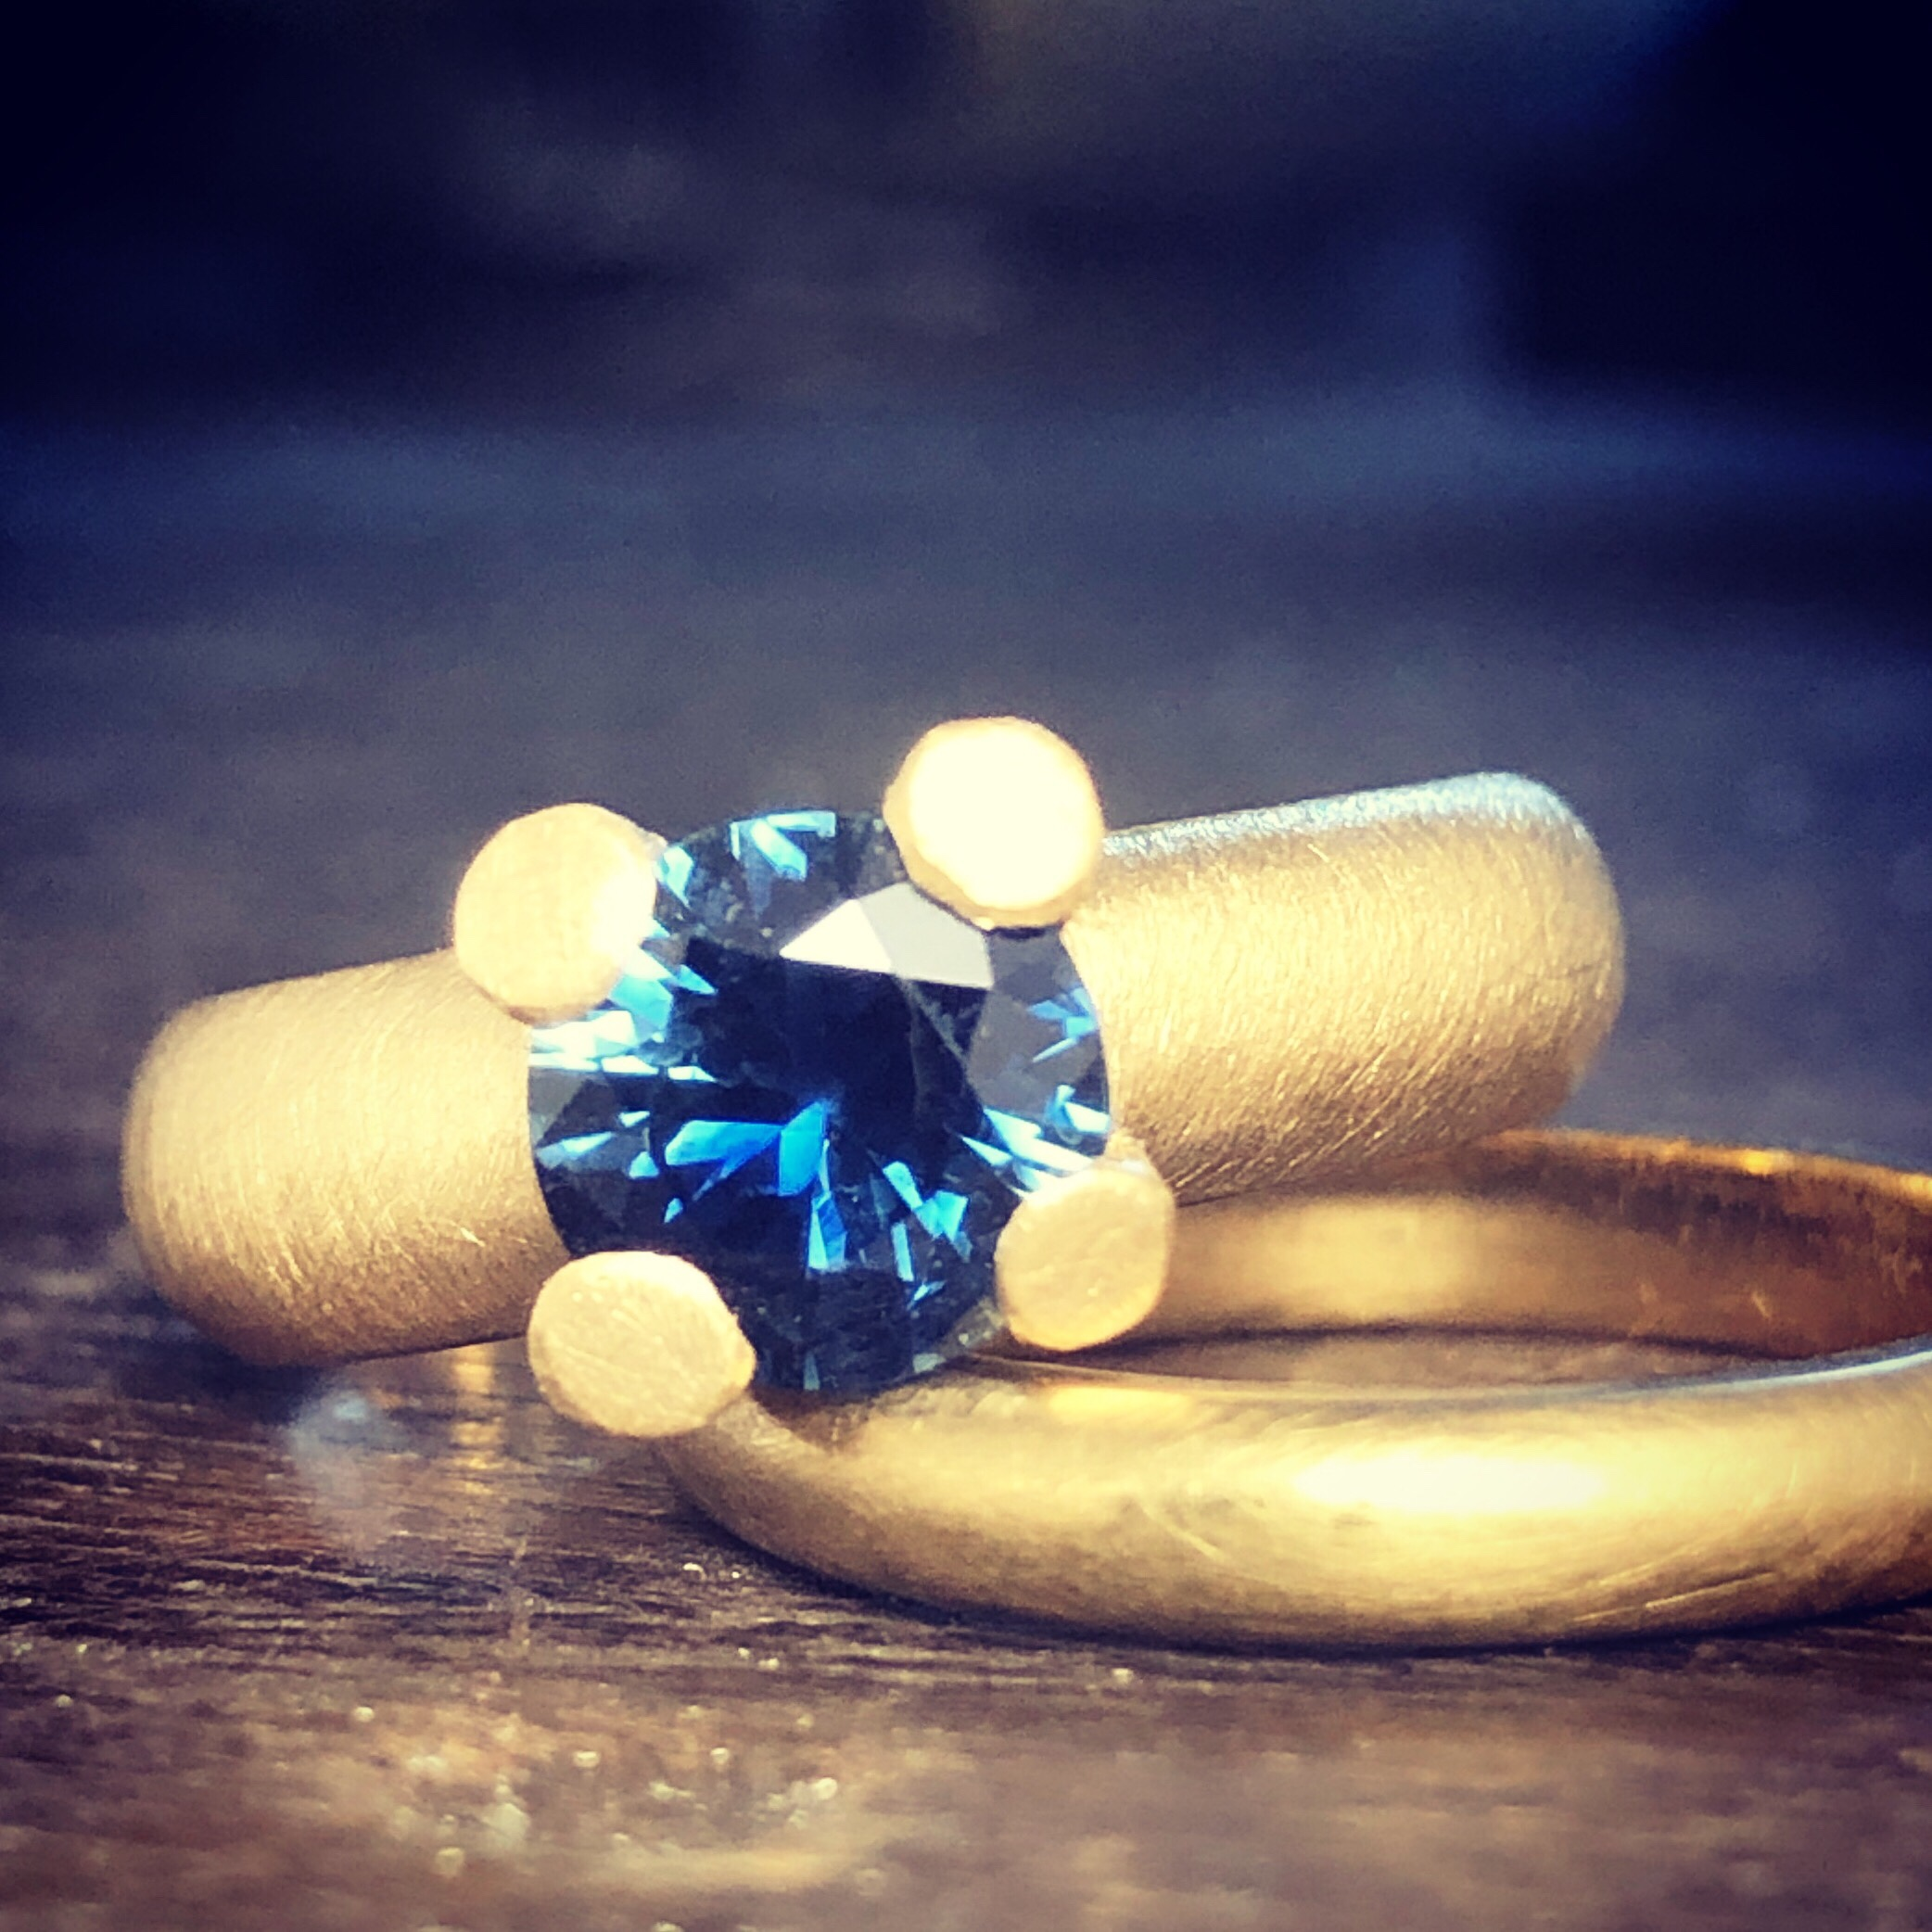 I dropped off this 18ct yellow gold castle ring with a stunning Australian blue Sapphire as a new stock piece for Studio Ingot and it walked out the door to a new home that very same day! You rock ingoteers!